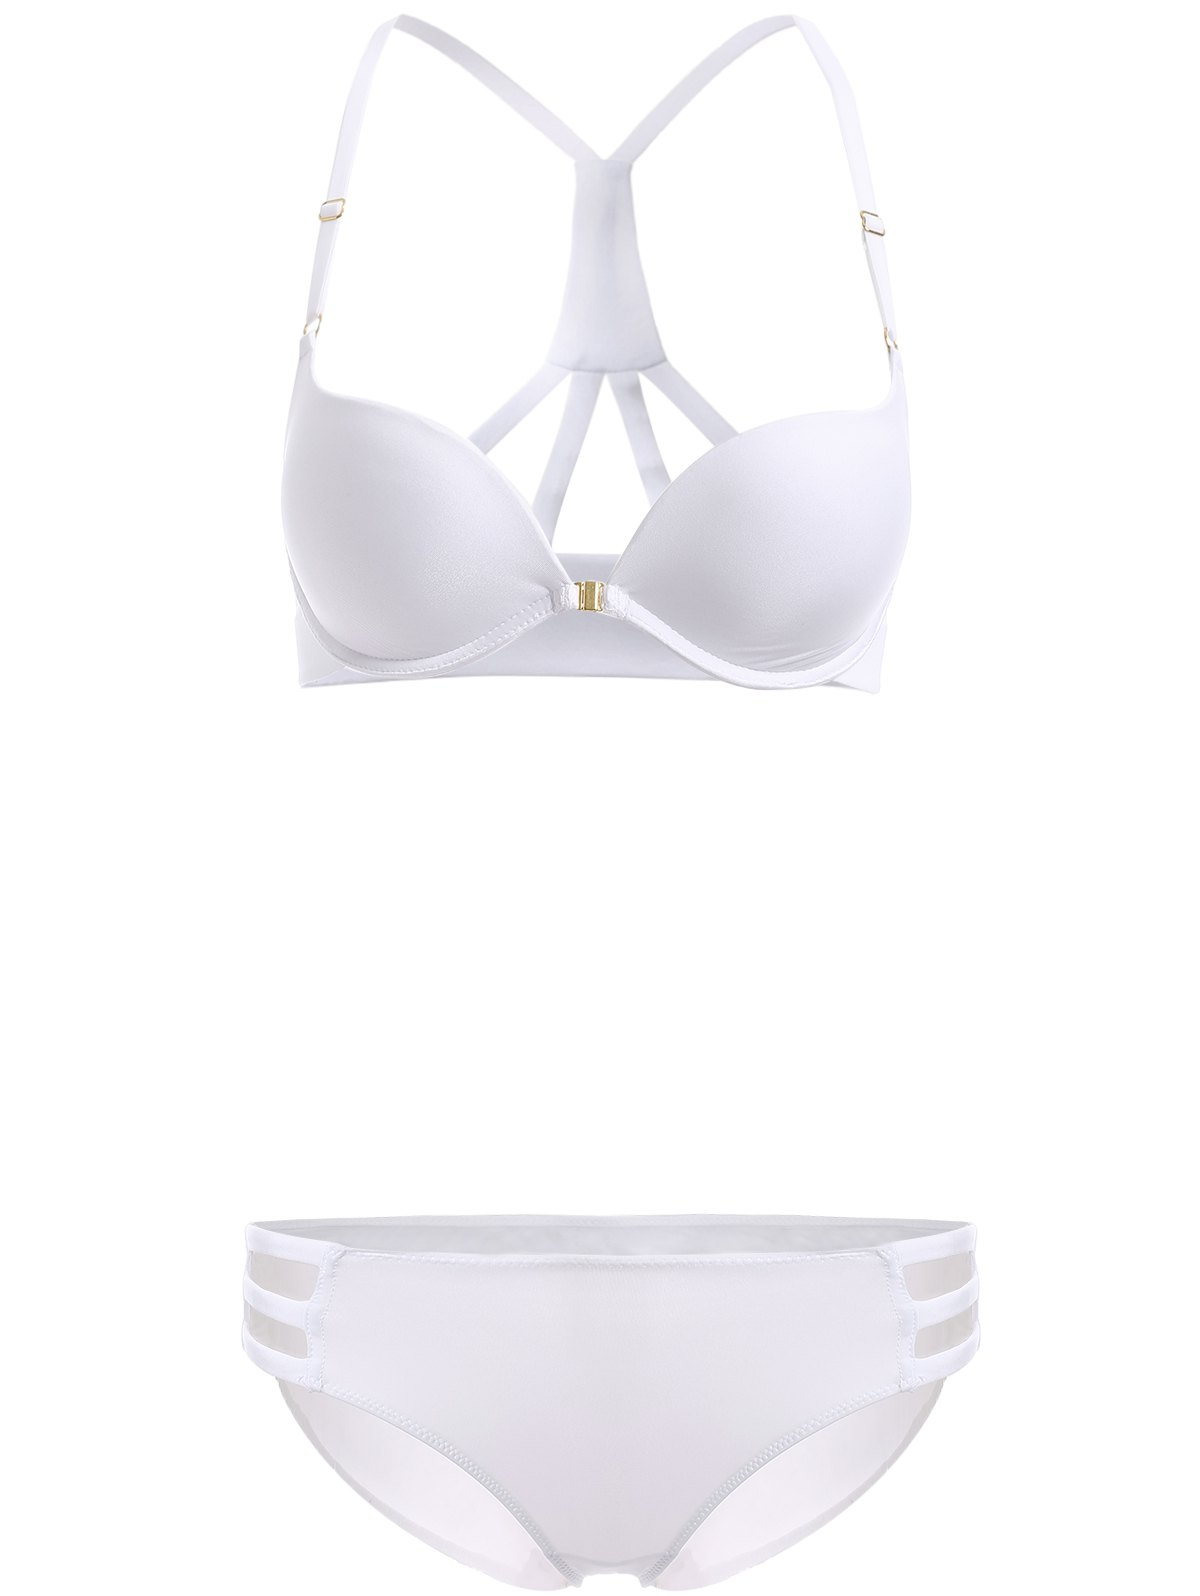 Front Closure Solid Color Push Up Bra Set 189230515